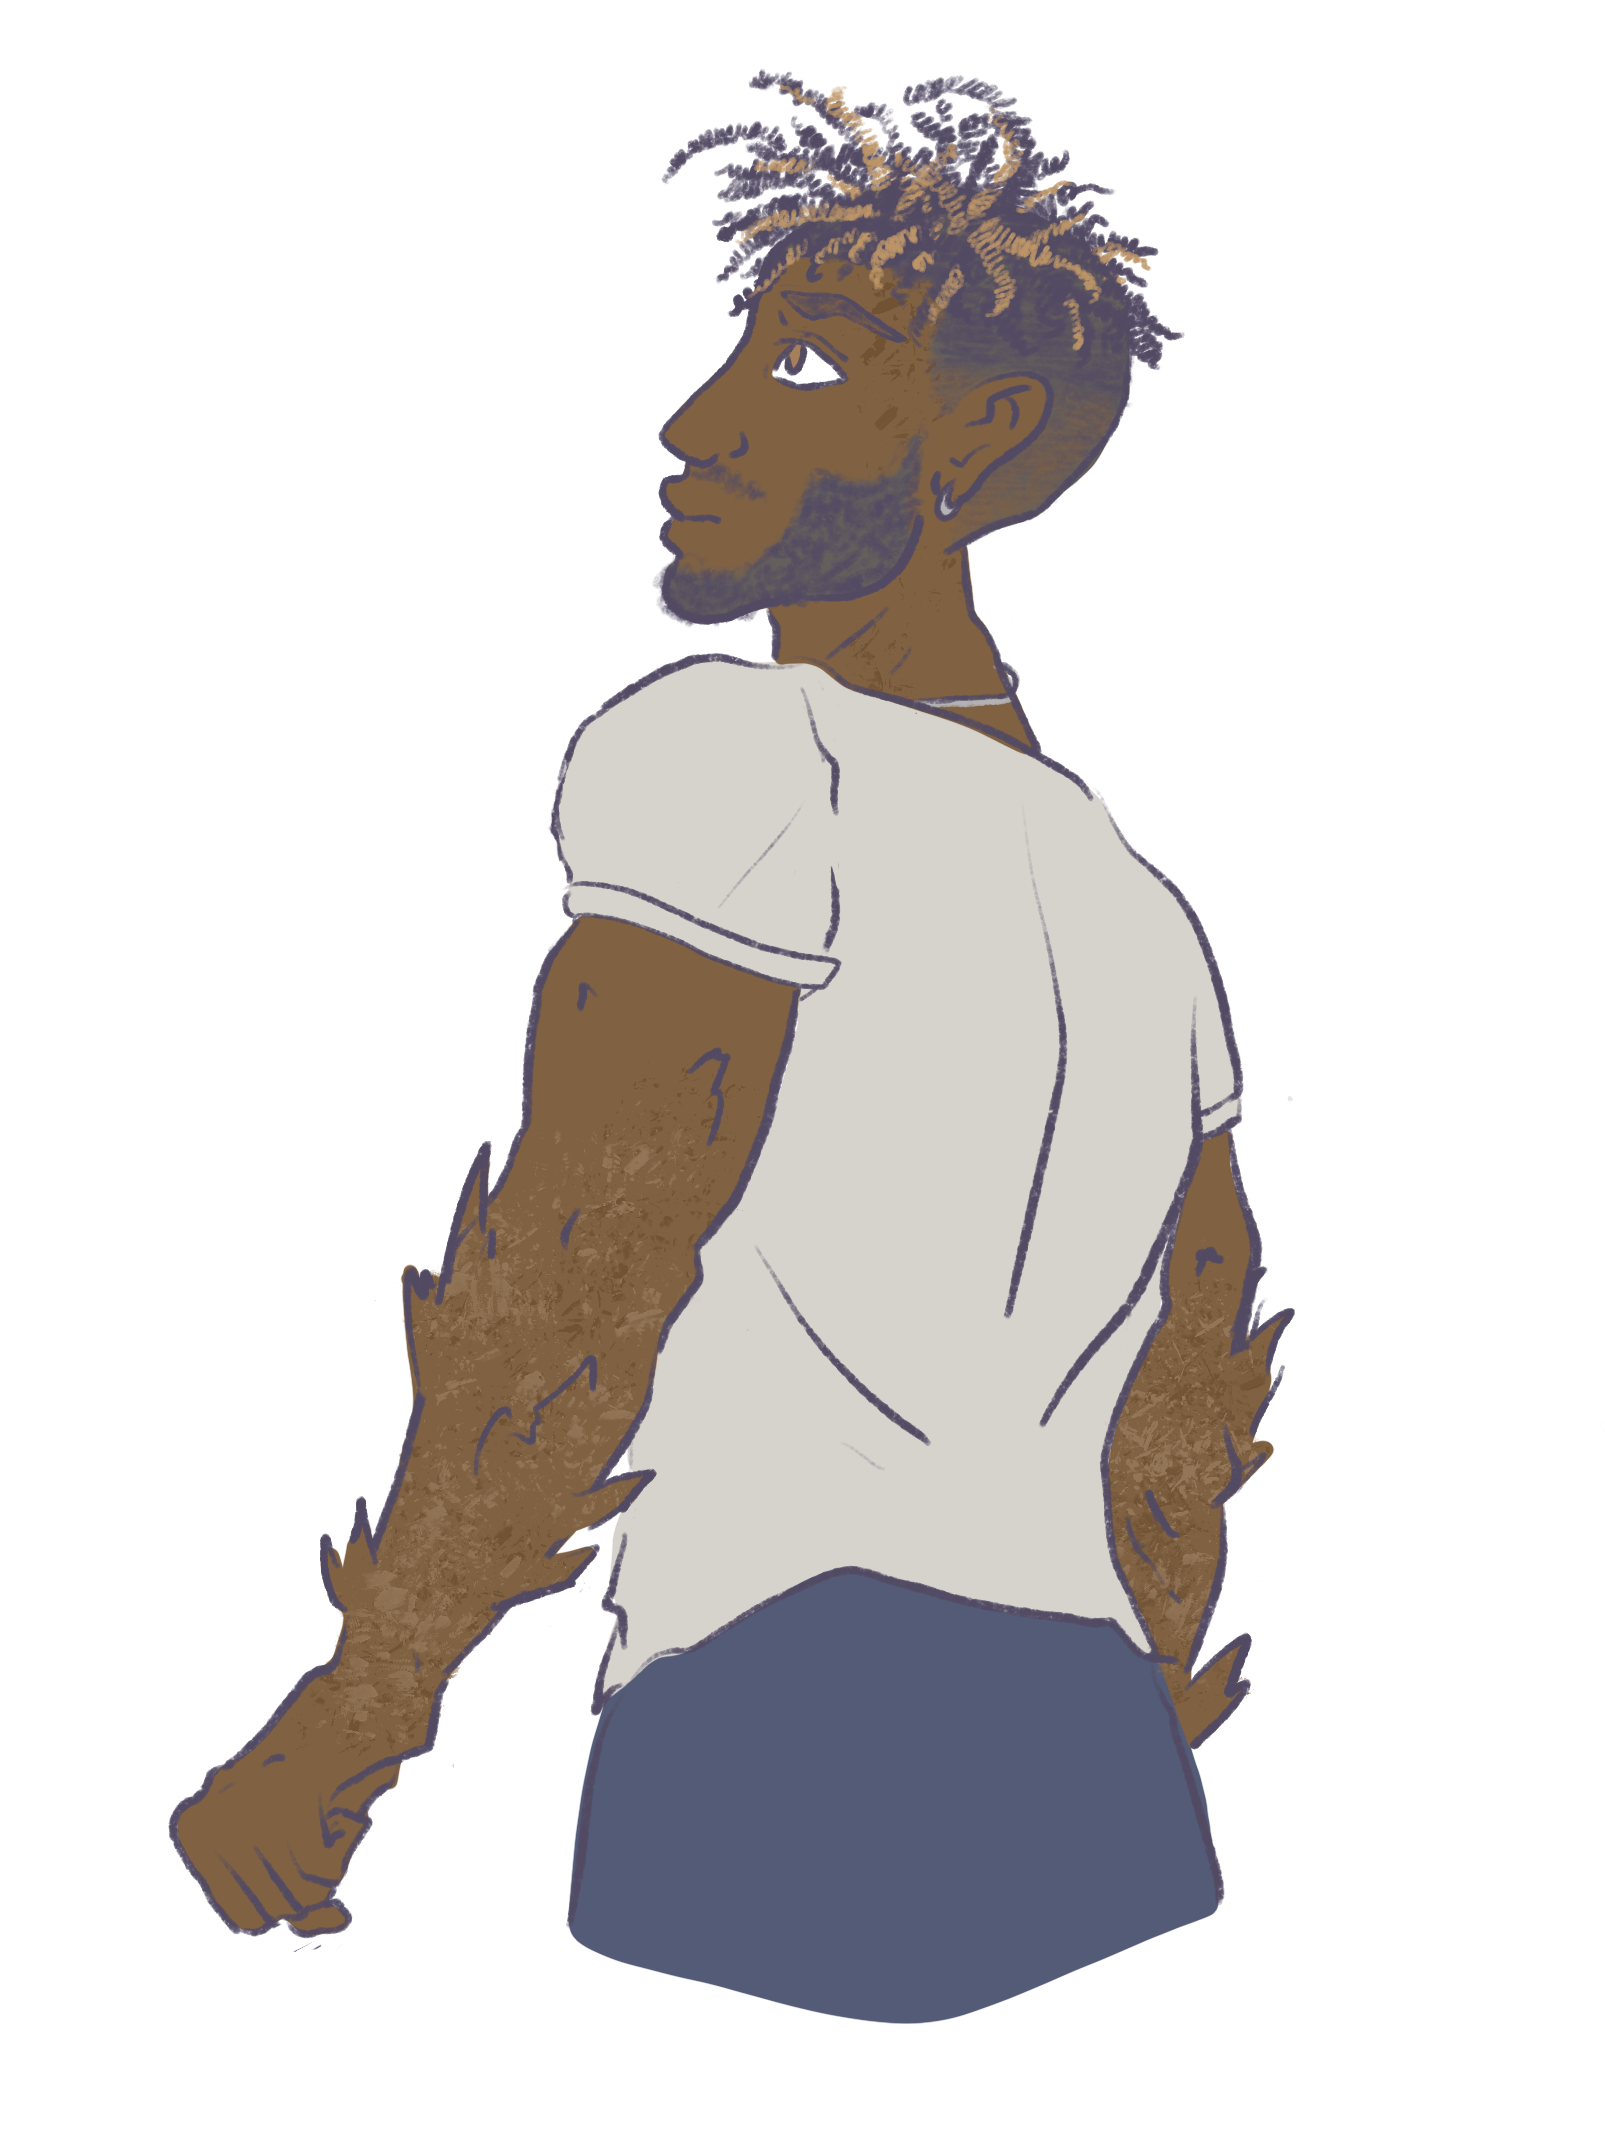 Character sketch of Giovanni from the hip up, his back to us as he looks up and to the left. His arms have only just shifted for the first time; sandy-colored spikes jut out in various directions. Sketch by GREYANGLE (click the image to be redirected to her twitter)